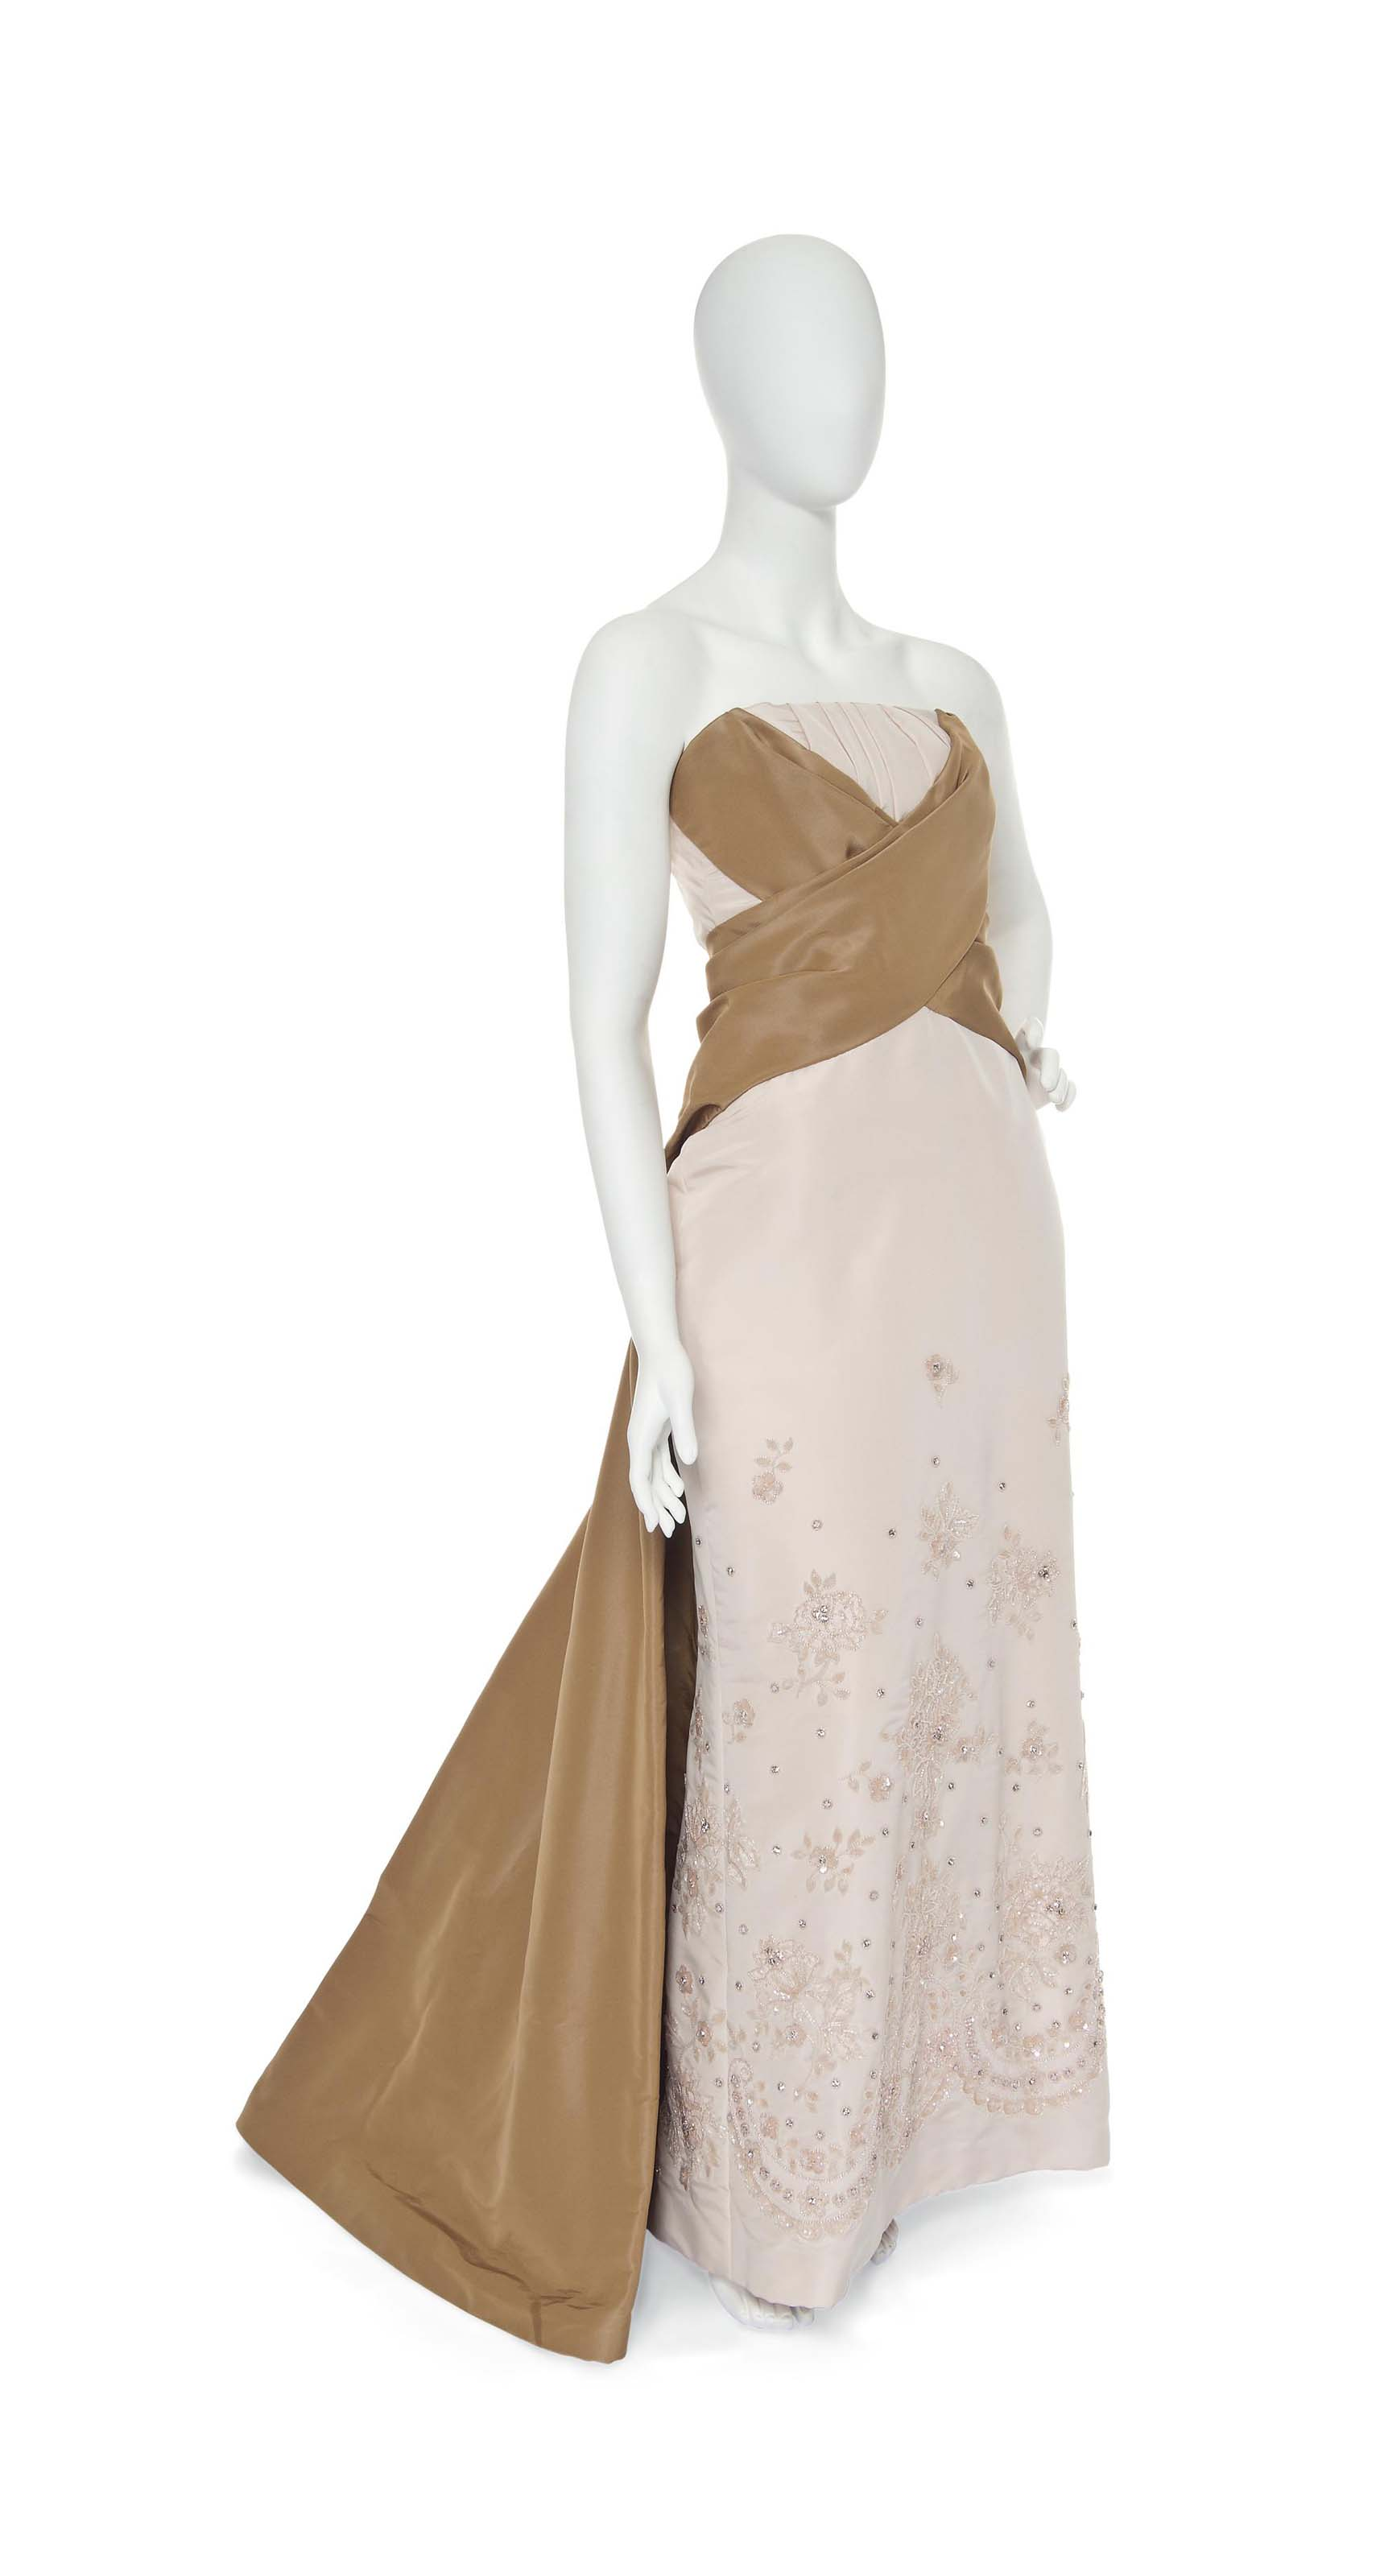 A JOHN GALLIANO FOR CHRISTIAN DIOR NUDE PINK GROSGRAIN EVENING GOWN